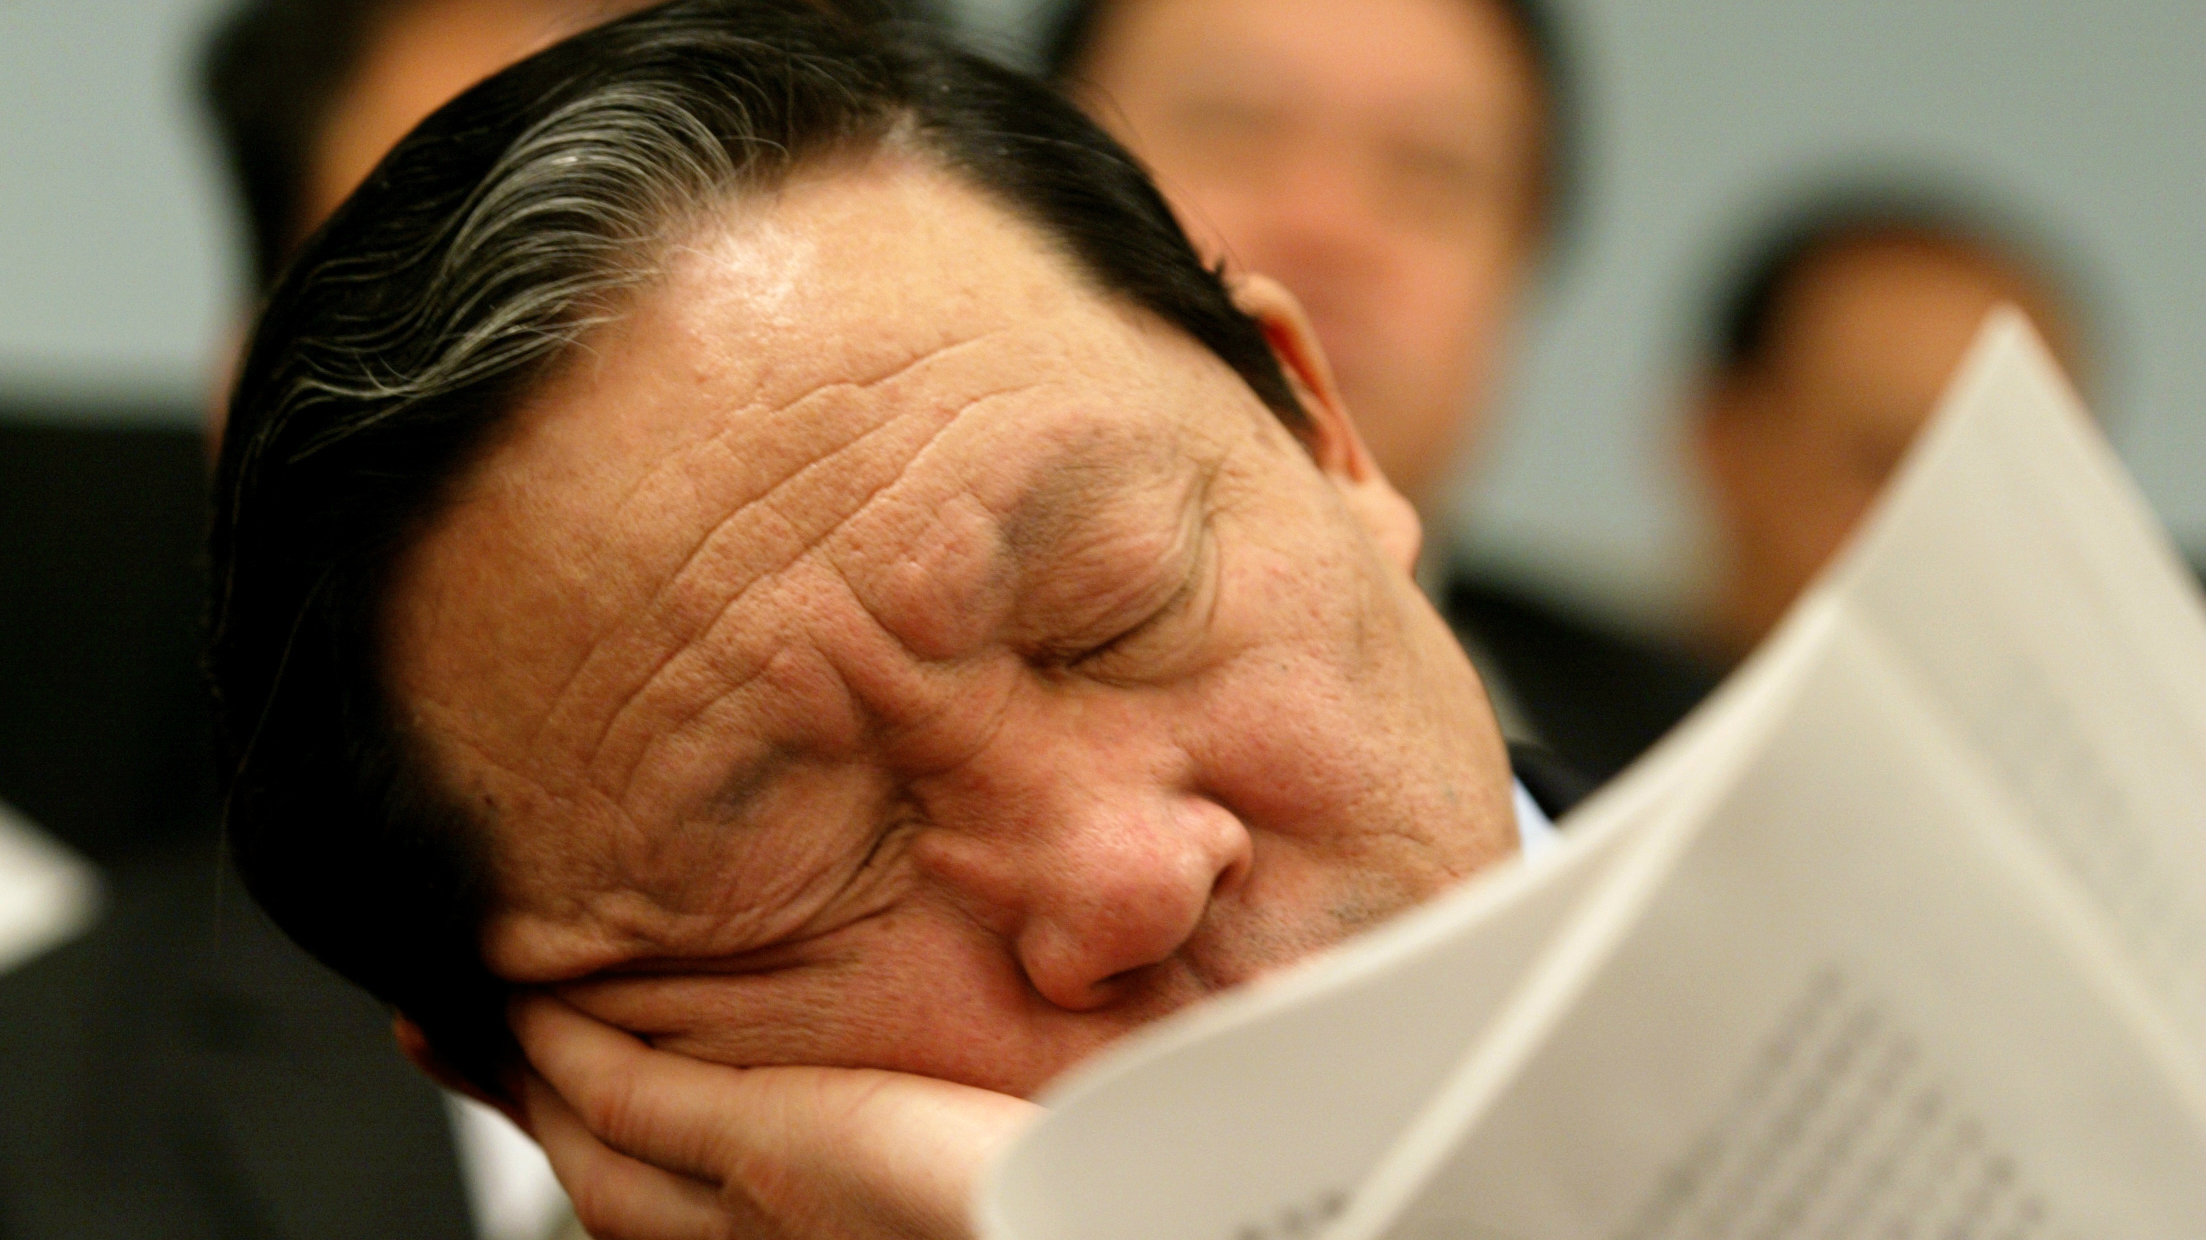 A delegation member sleeps during the opening session of the National People's Congress (NPC), or parliament, at the Great Hall of the People in Beijing March 5, 2003. The NPC began on Wednesday in China's capital, when China's new leadership will take up their positions. The Congress will end on March 18.